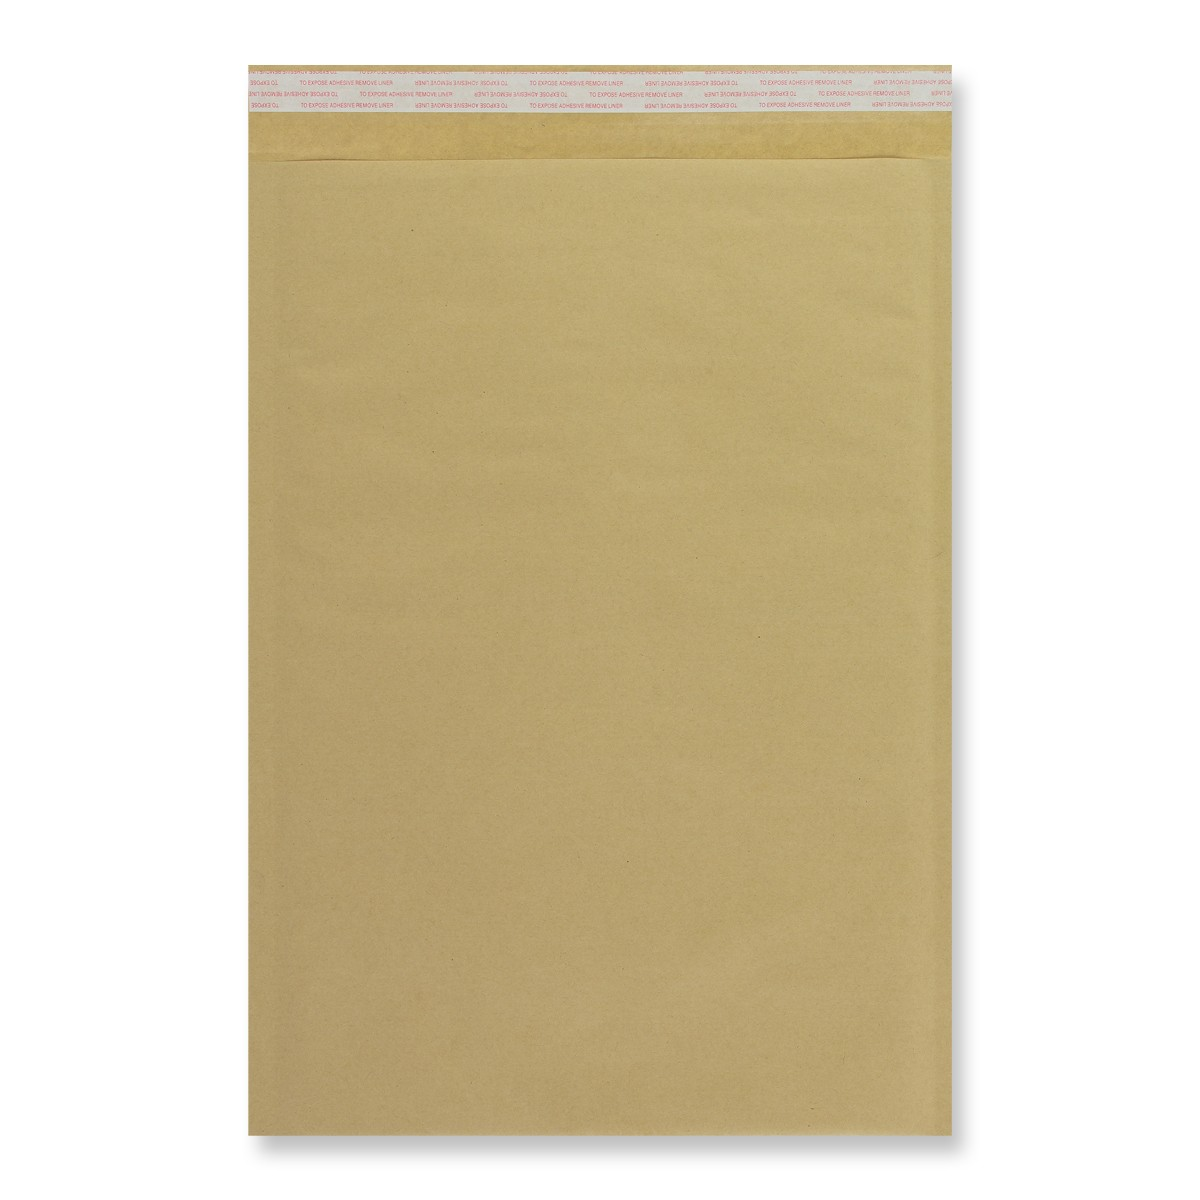 445 x 300mm MANILLA BUBBLE BAG ENVELOPES